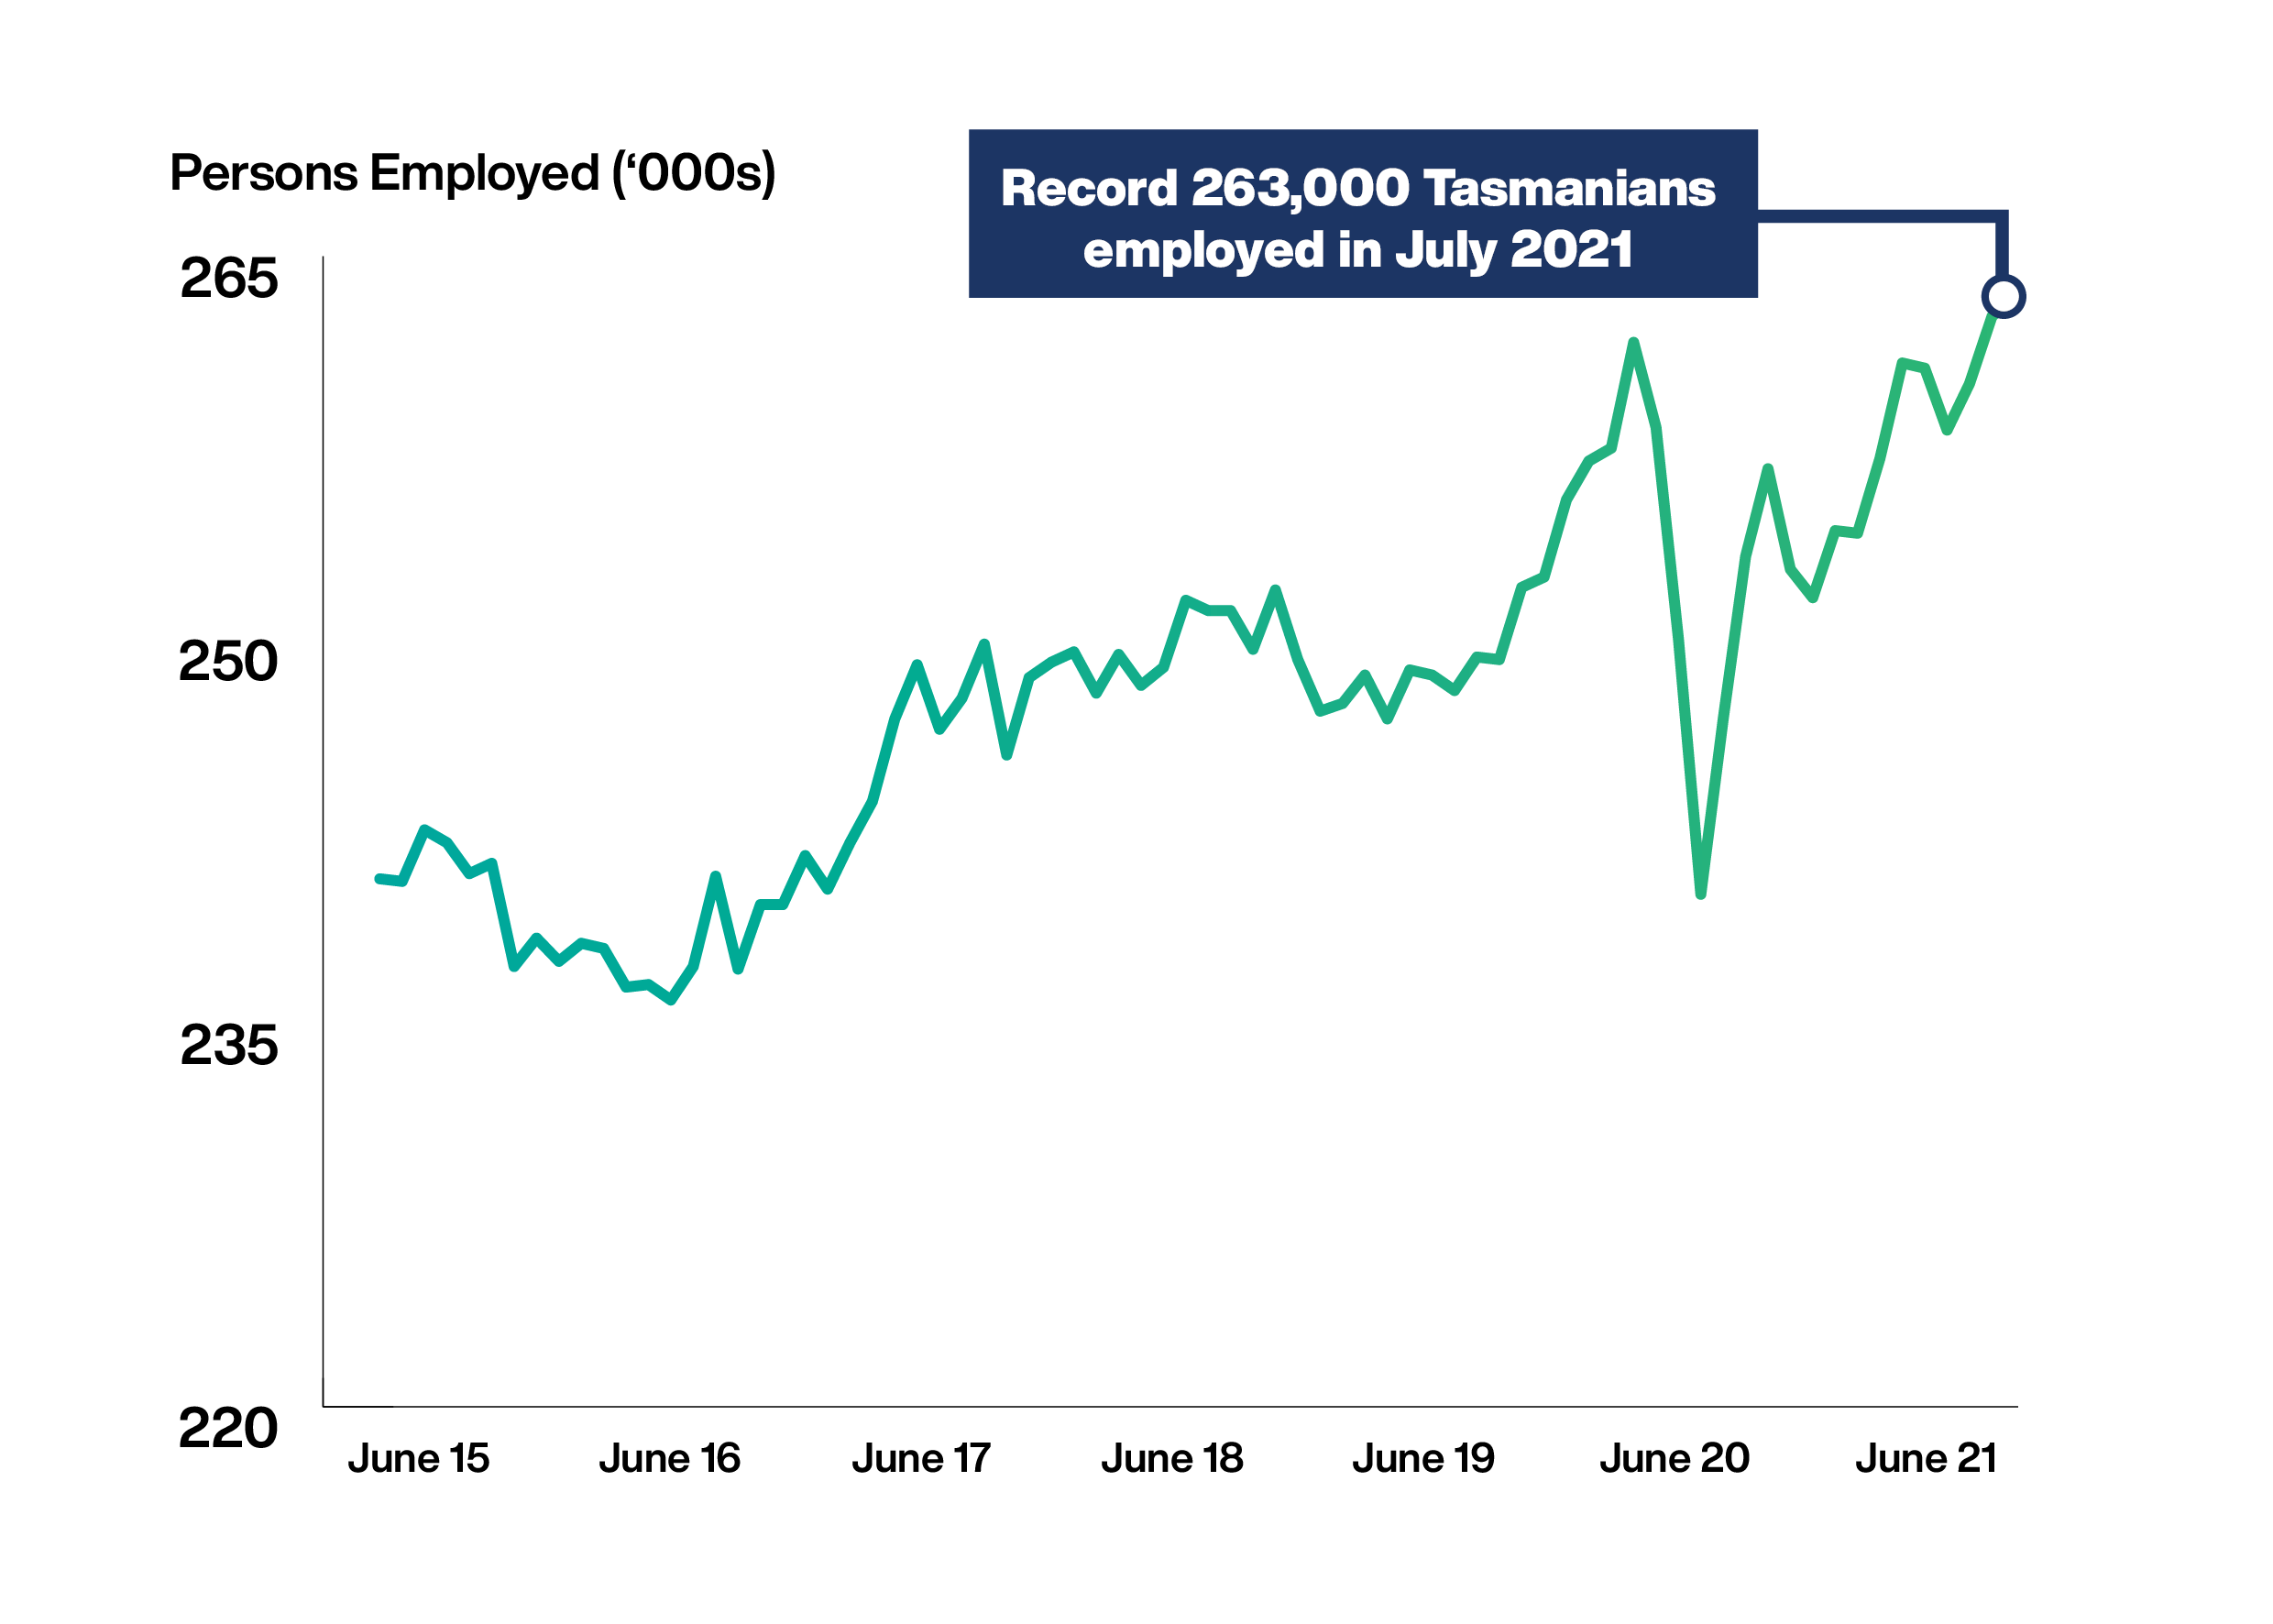 Record 263,000 Tasmanians employed in July 2021